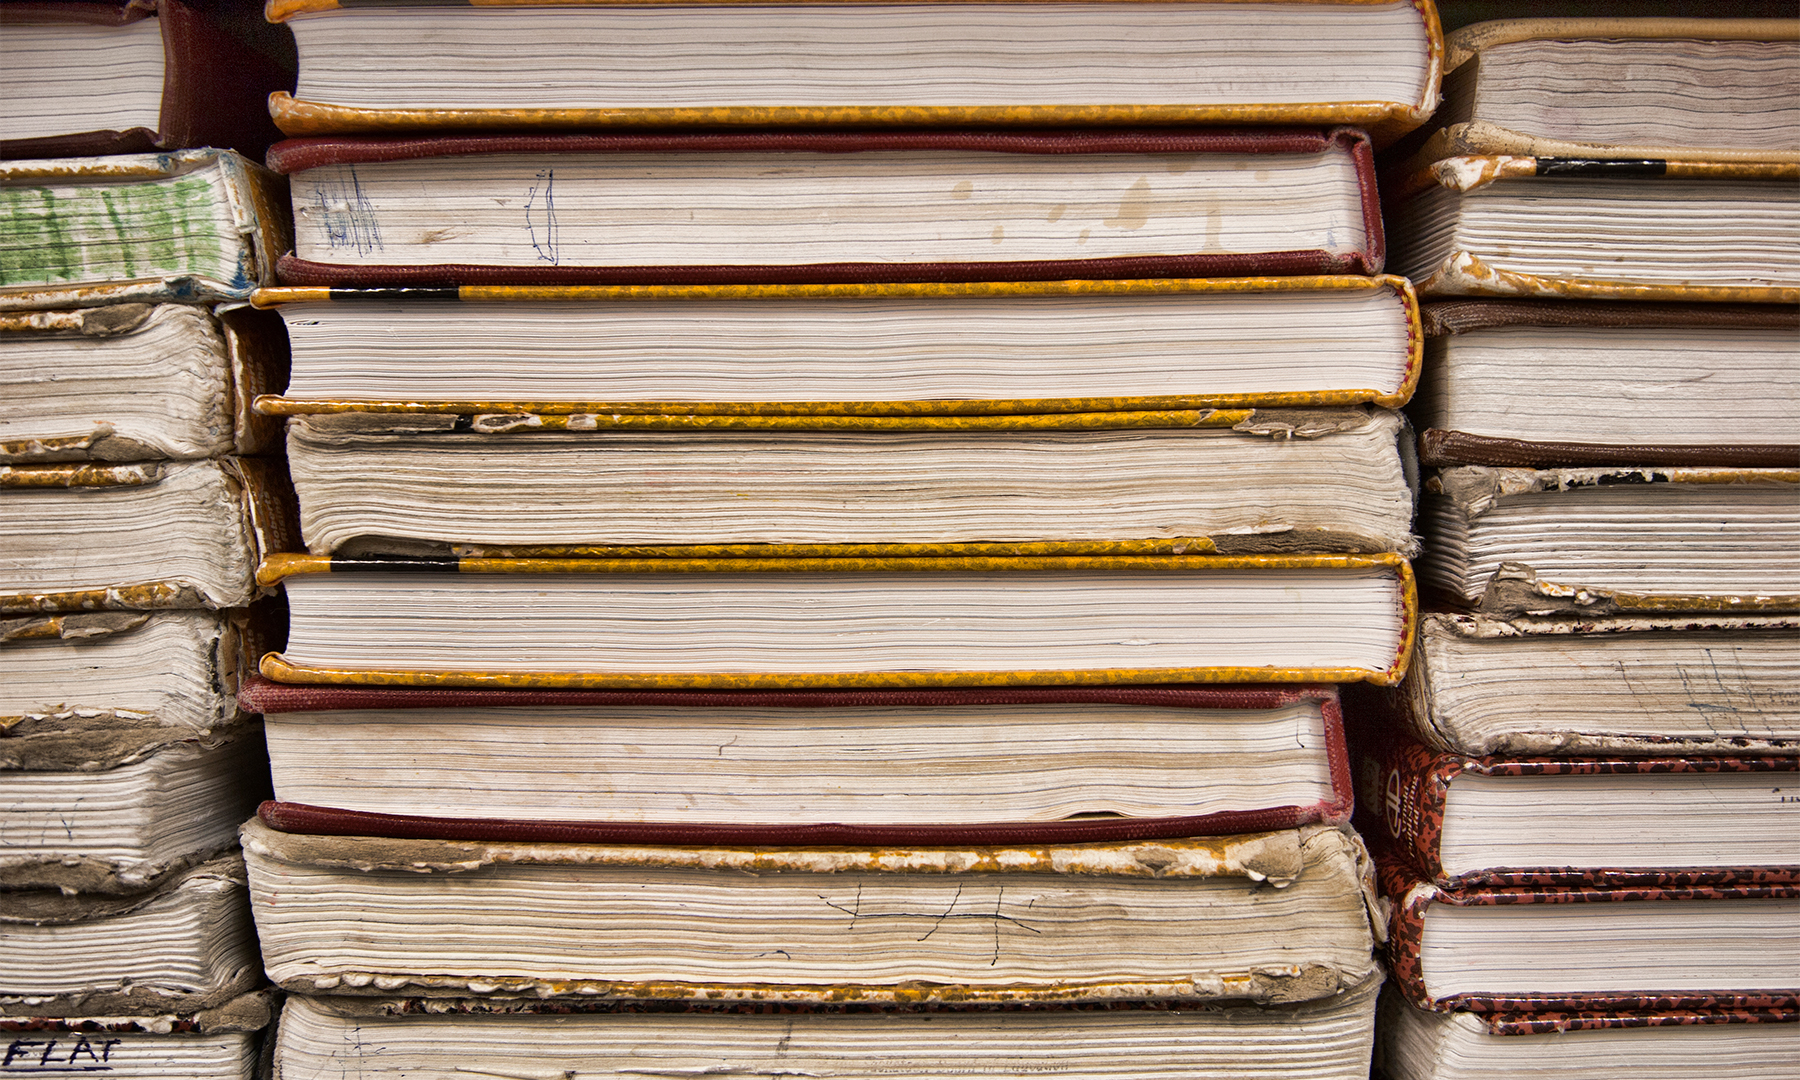 A stack of textbooks—viewed from the side—in varying conditions of use, from good to worn out.